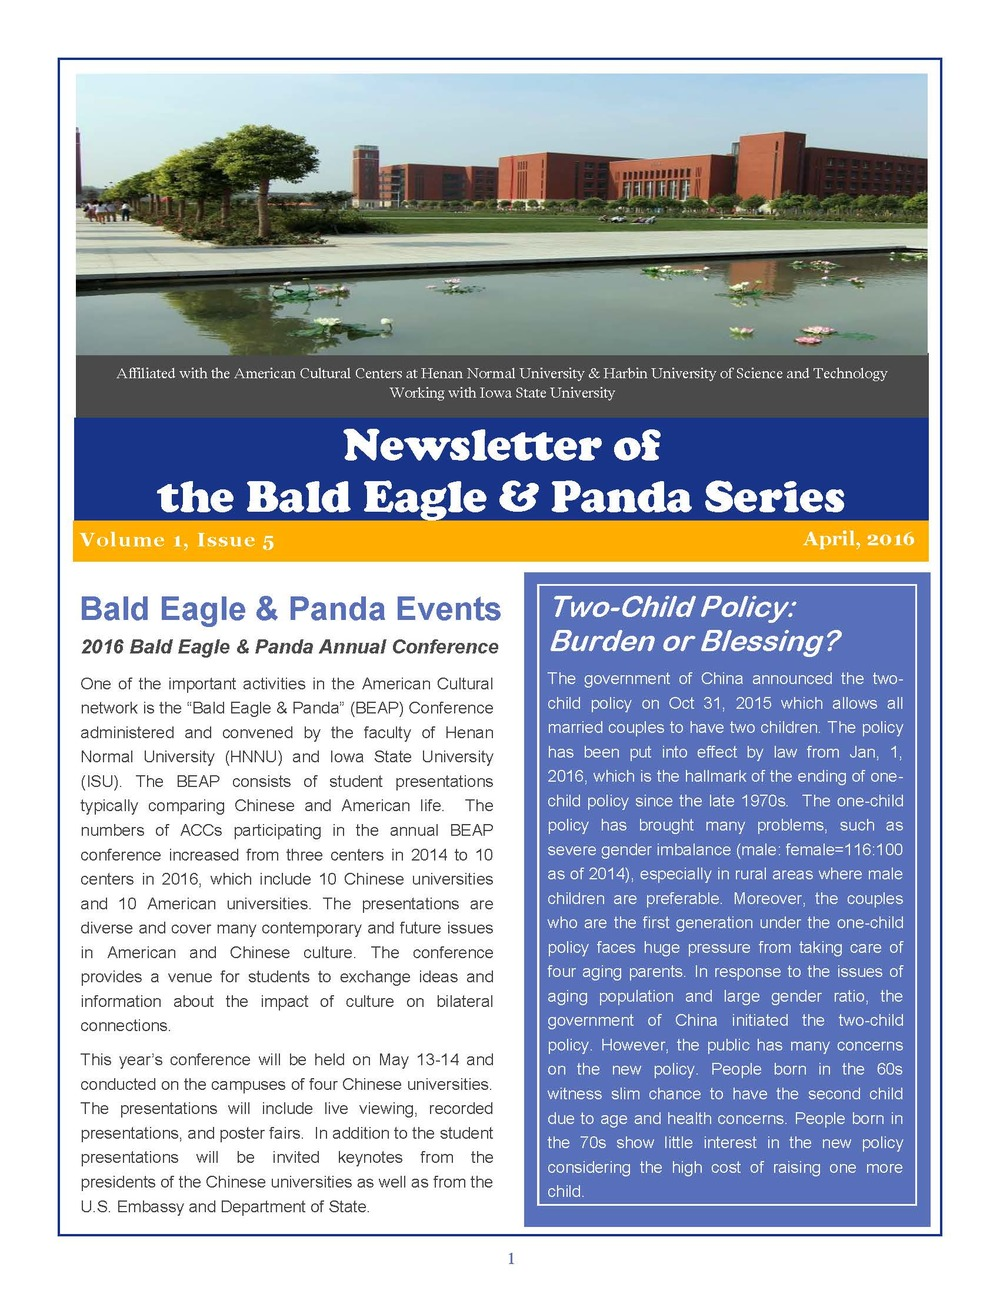 Bald Eagle & Panda Newsletter Issue 5_Page_1.jpg